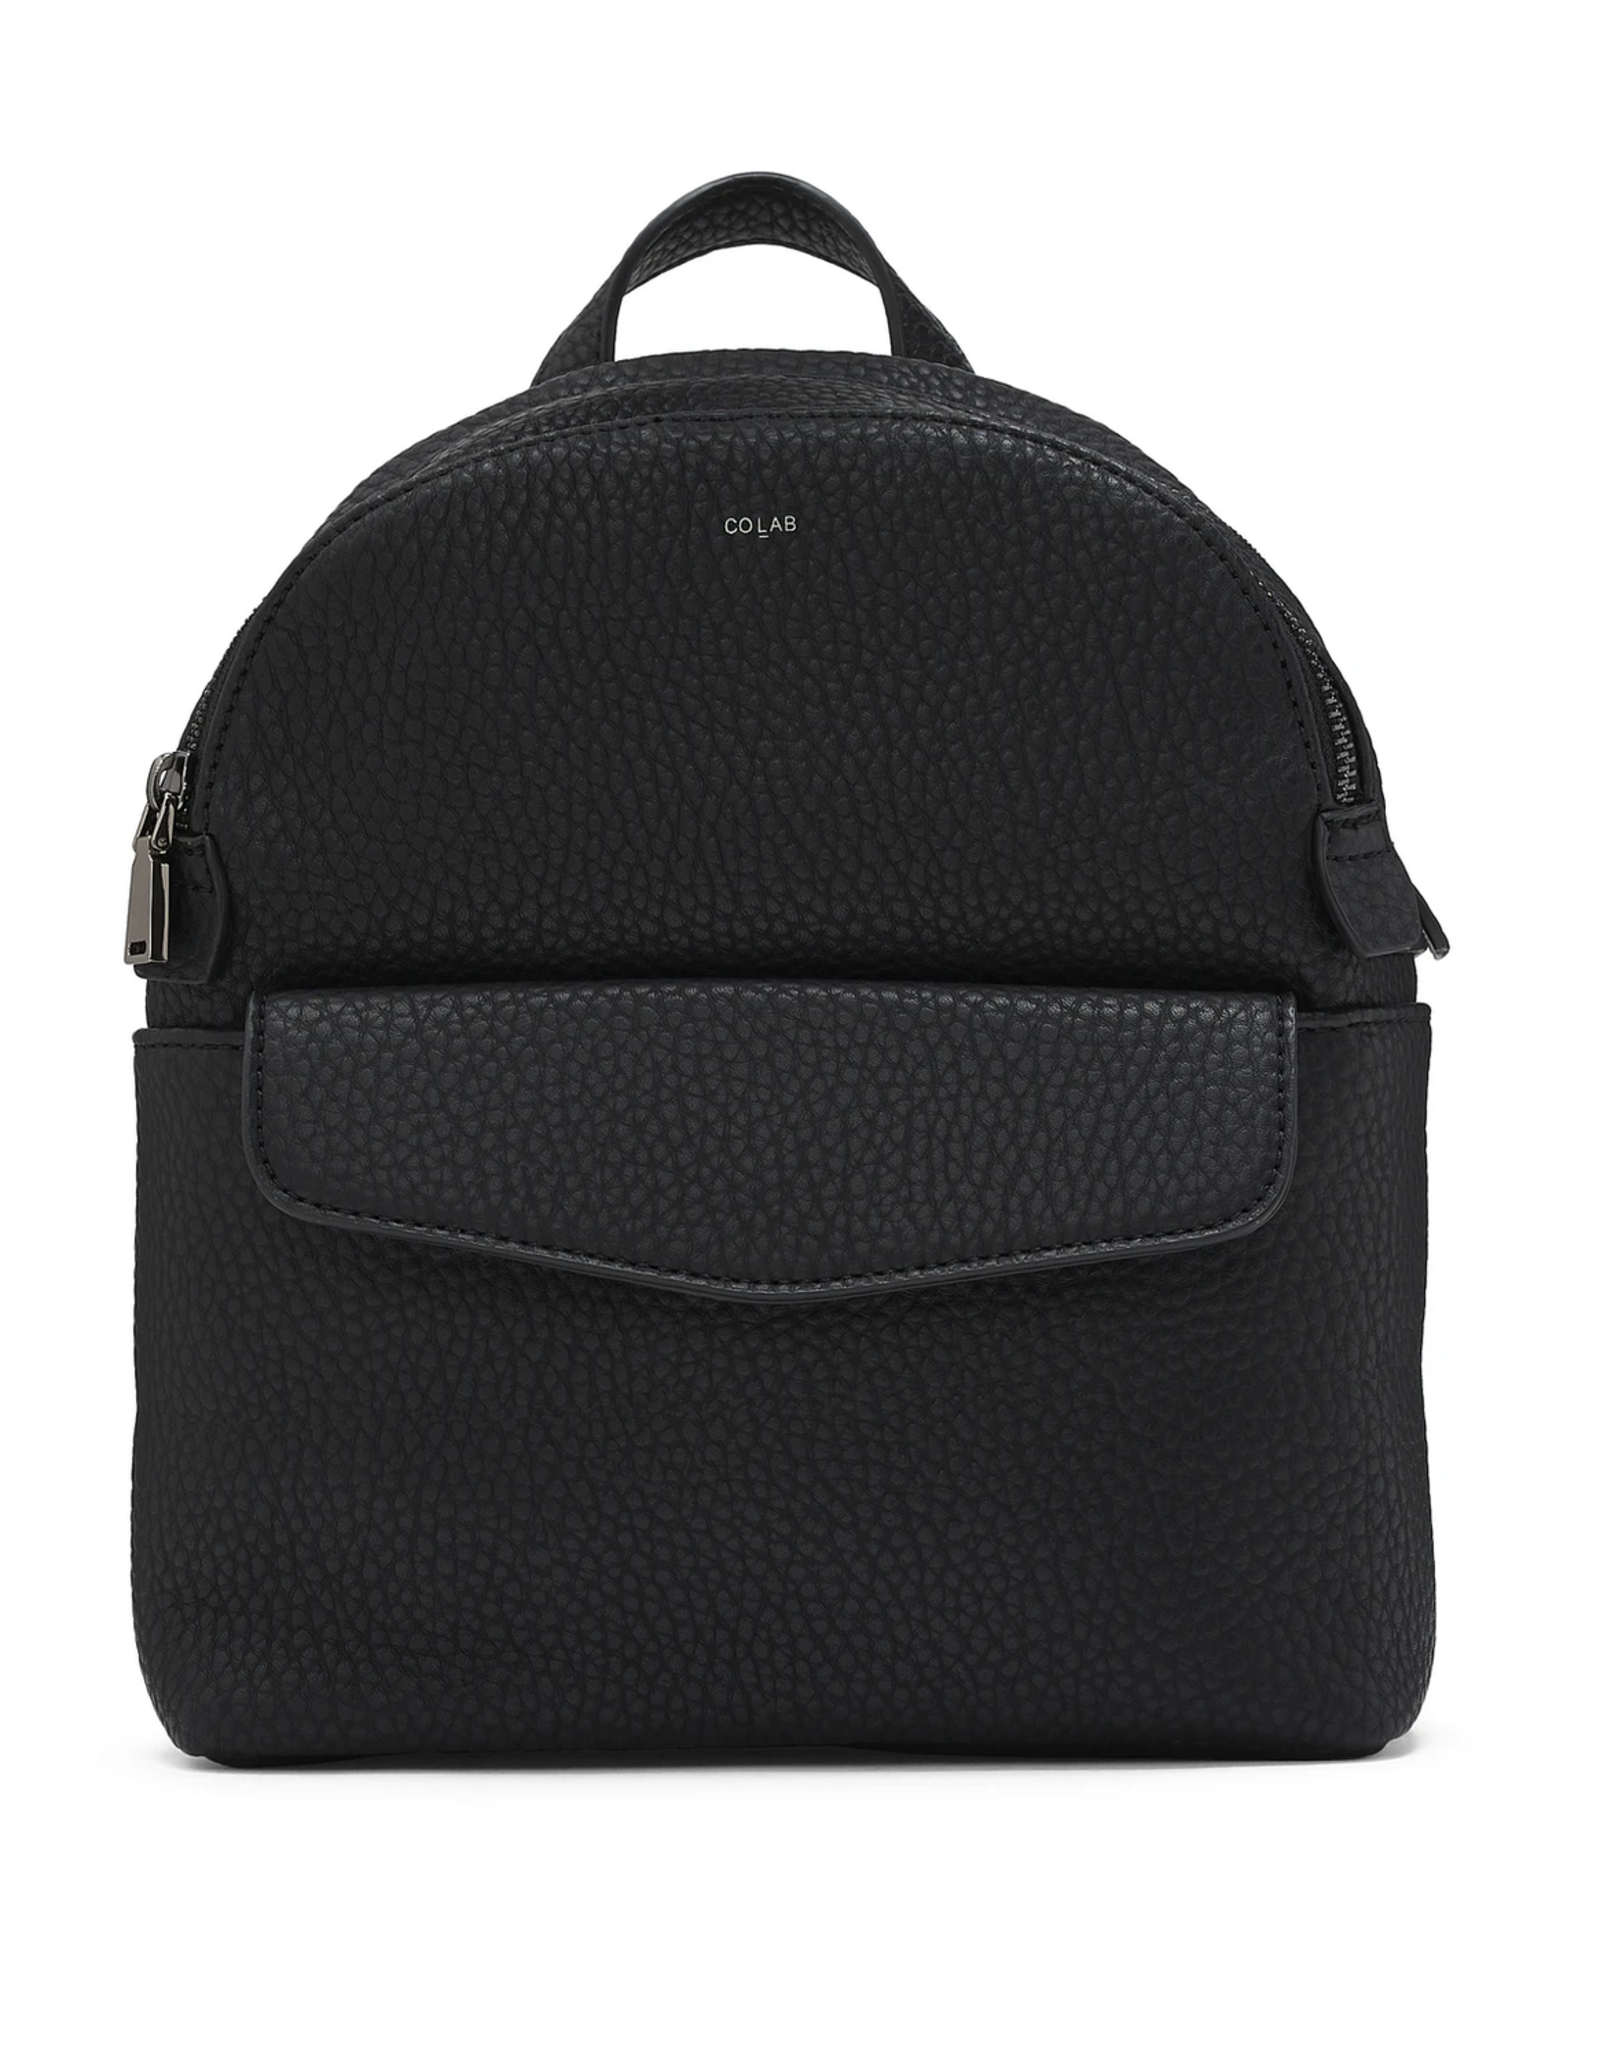 Co-Lab Jenny Small Backpack